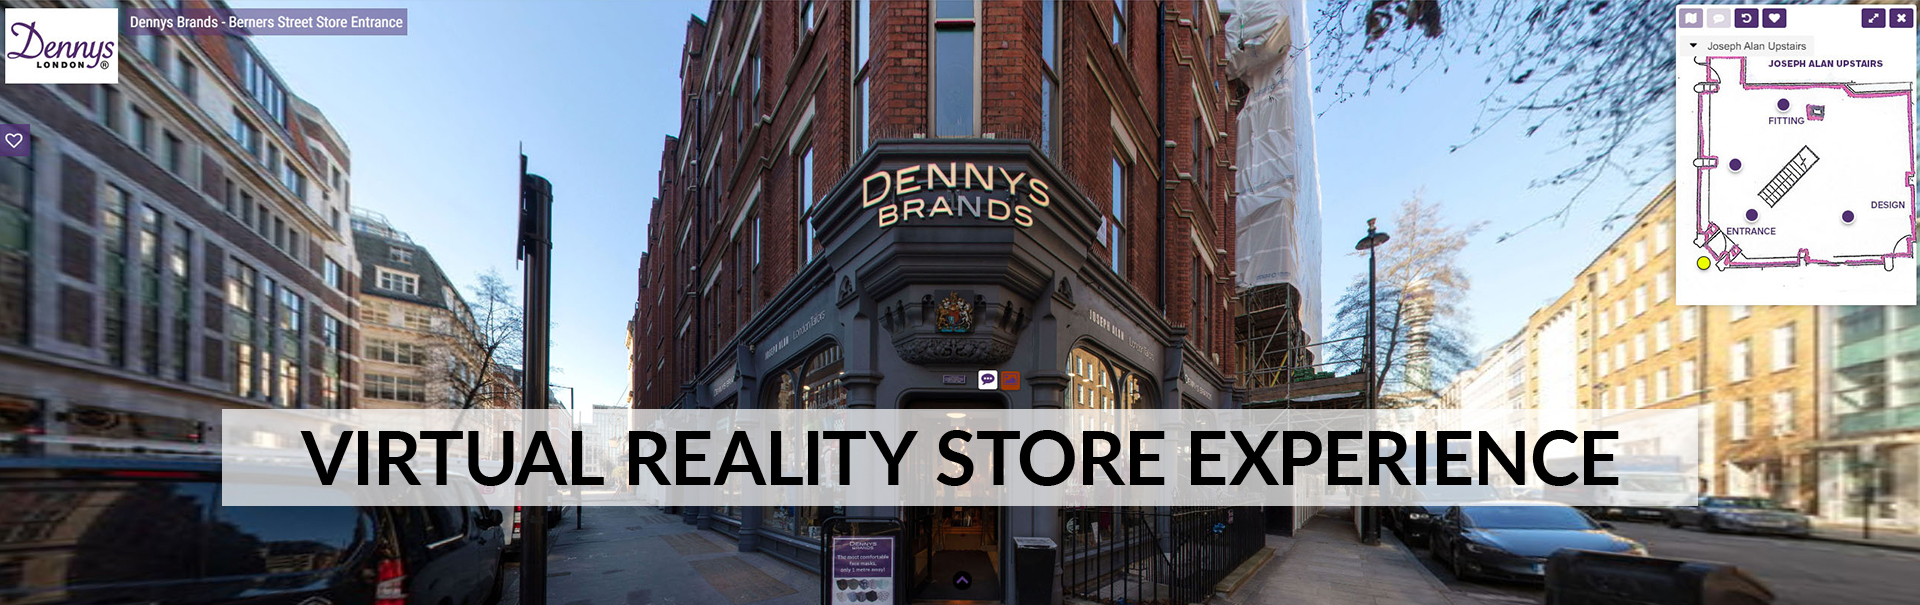 Dennys brands Virtual reality digital store, Berners Street